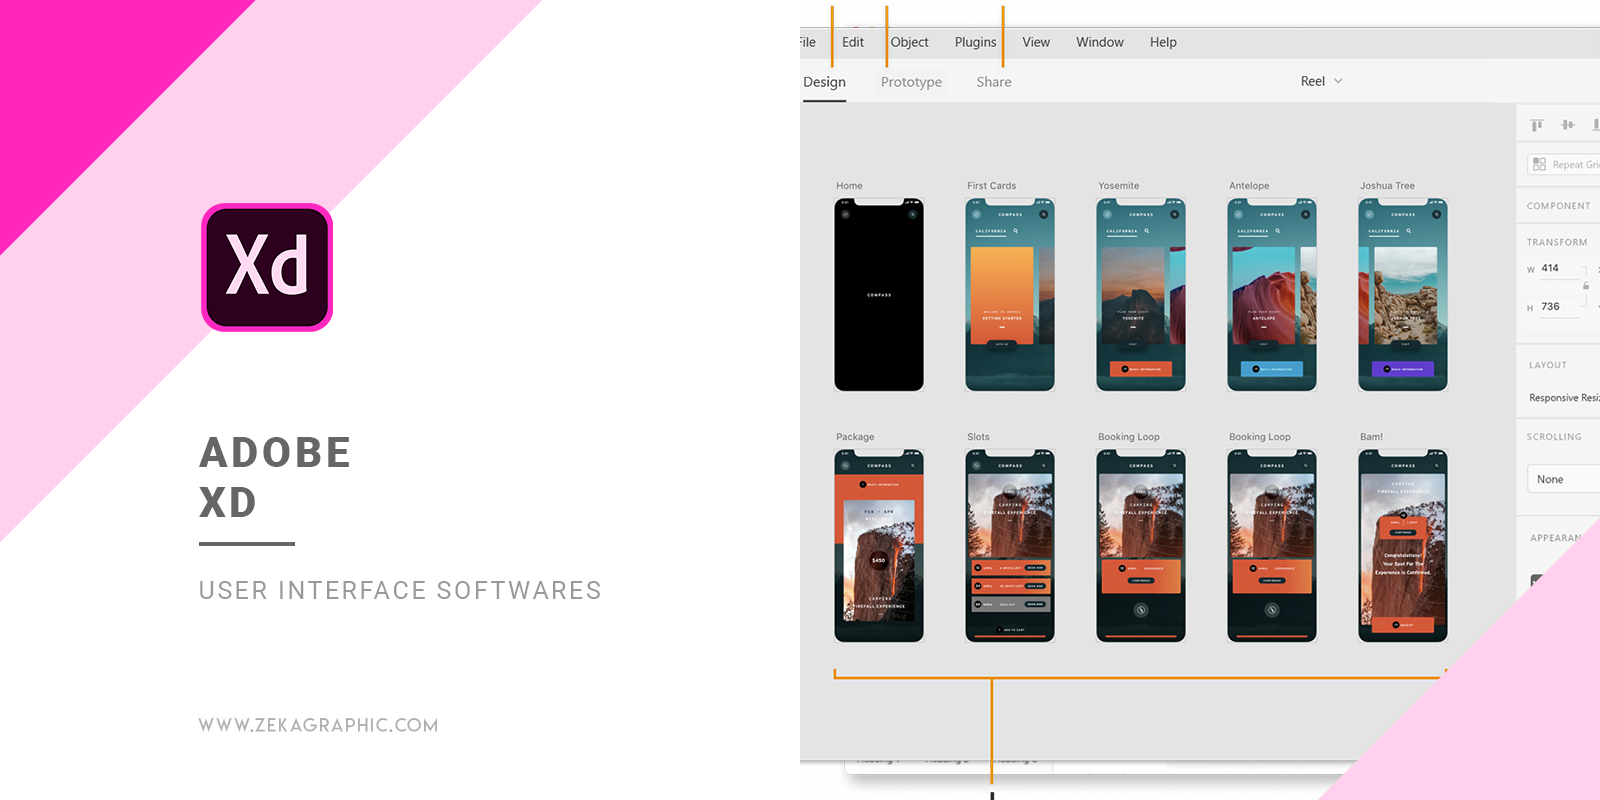 Adobe XD User Interface Software for Graphic Design